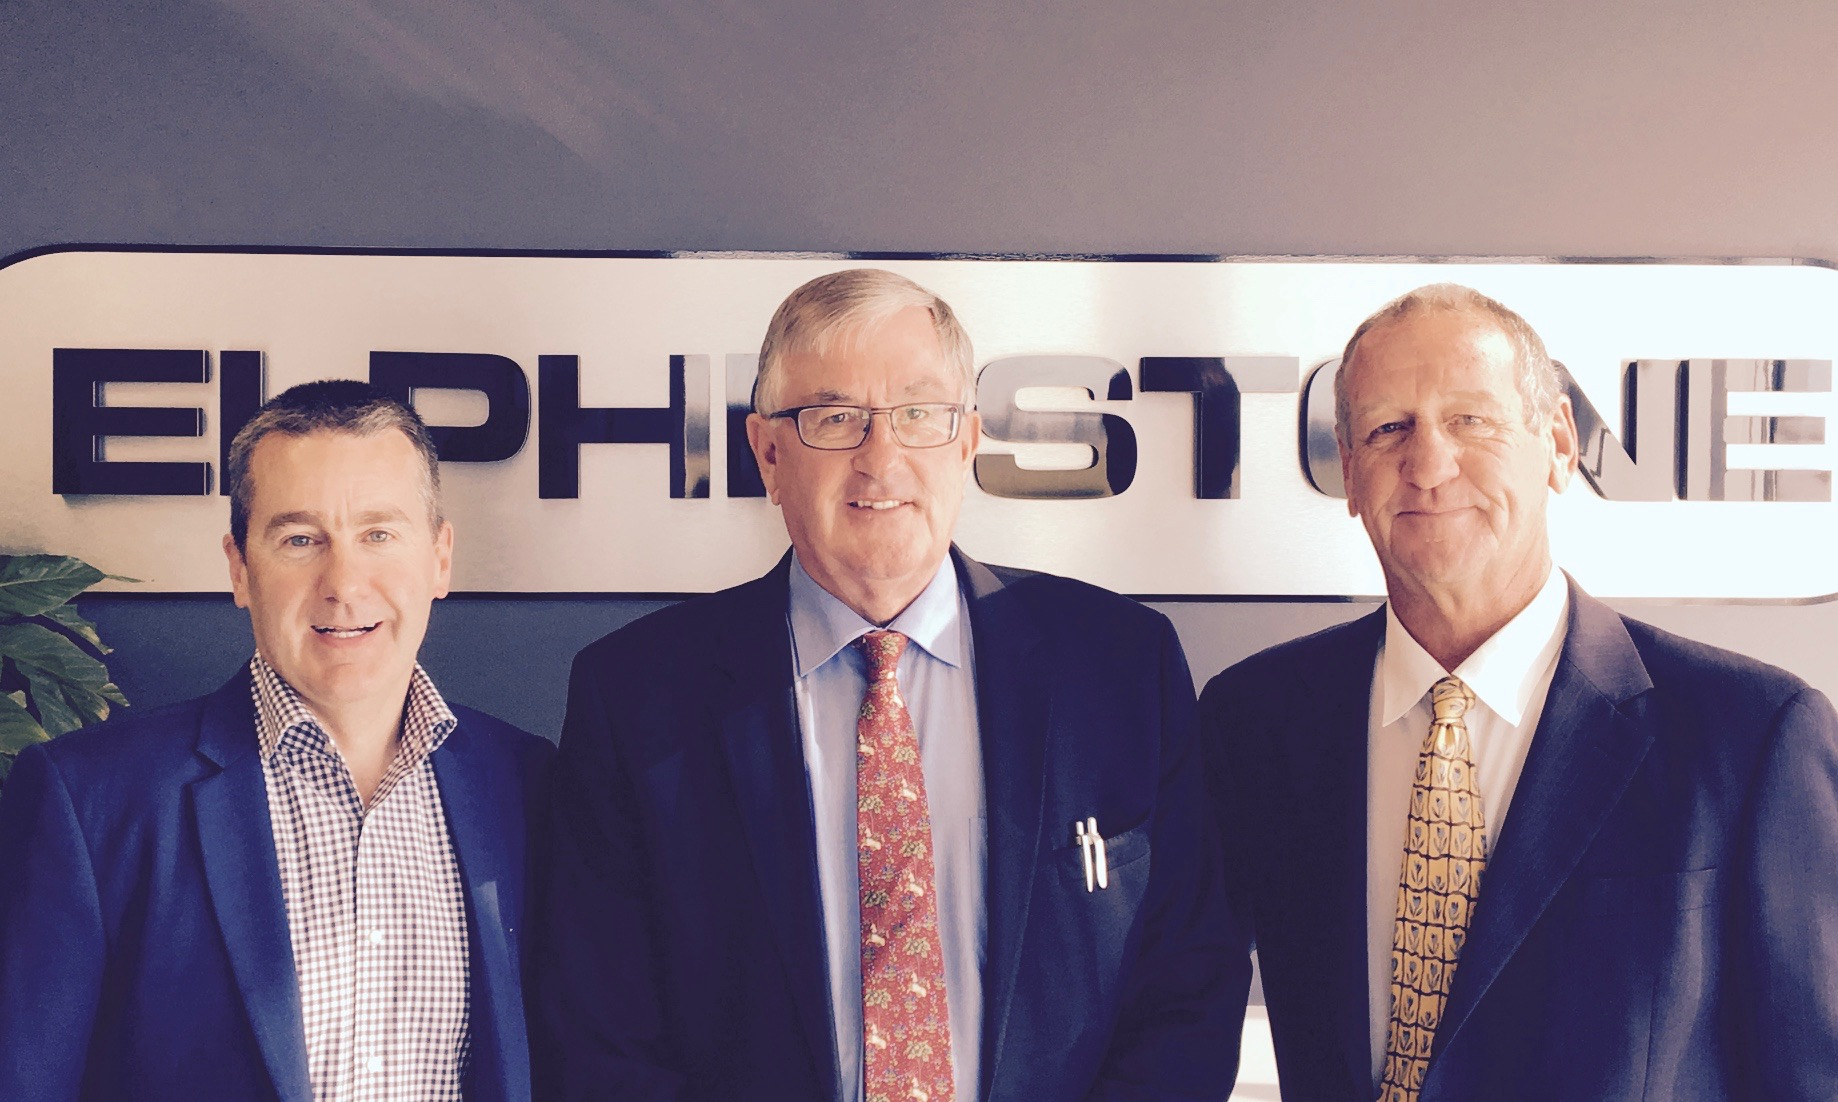 Elphinstone's executive general manager Lee Whiteley, Tasmanian transport minister Rene Hidding and Transit Australia Group chairman Luke Gray